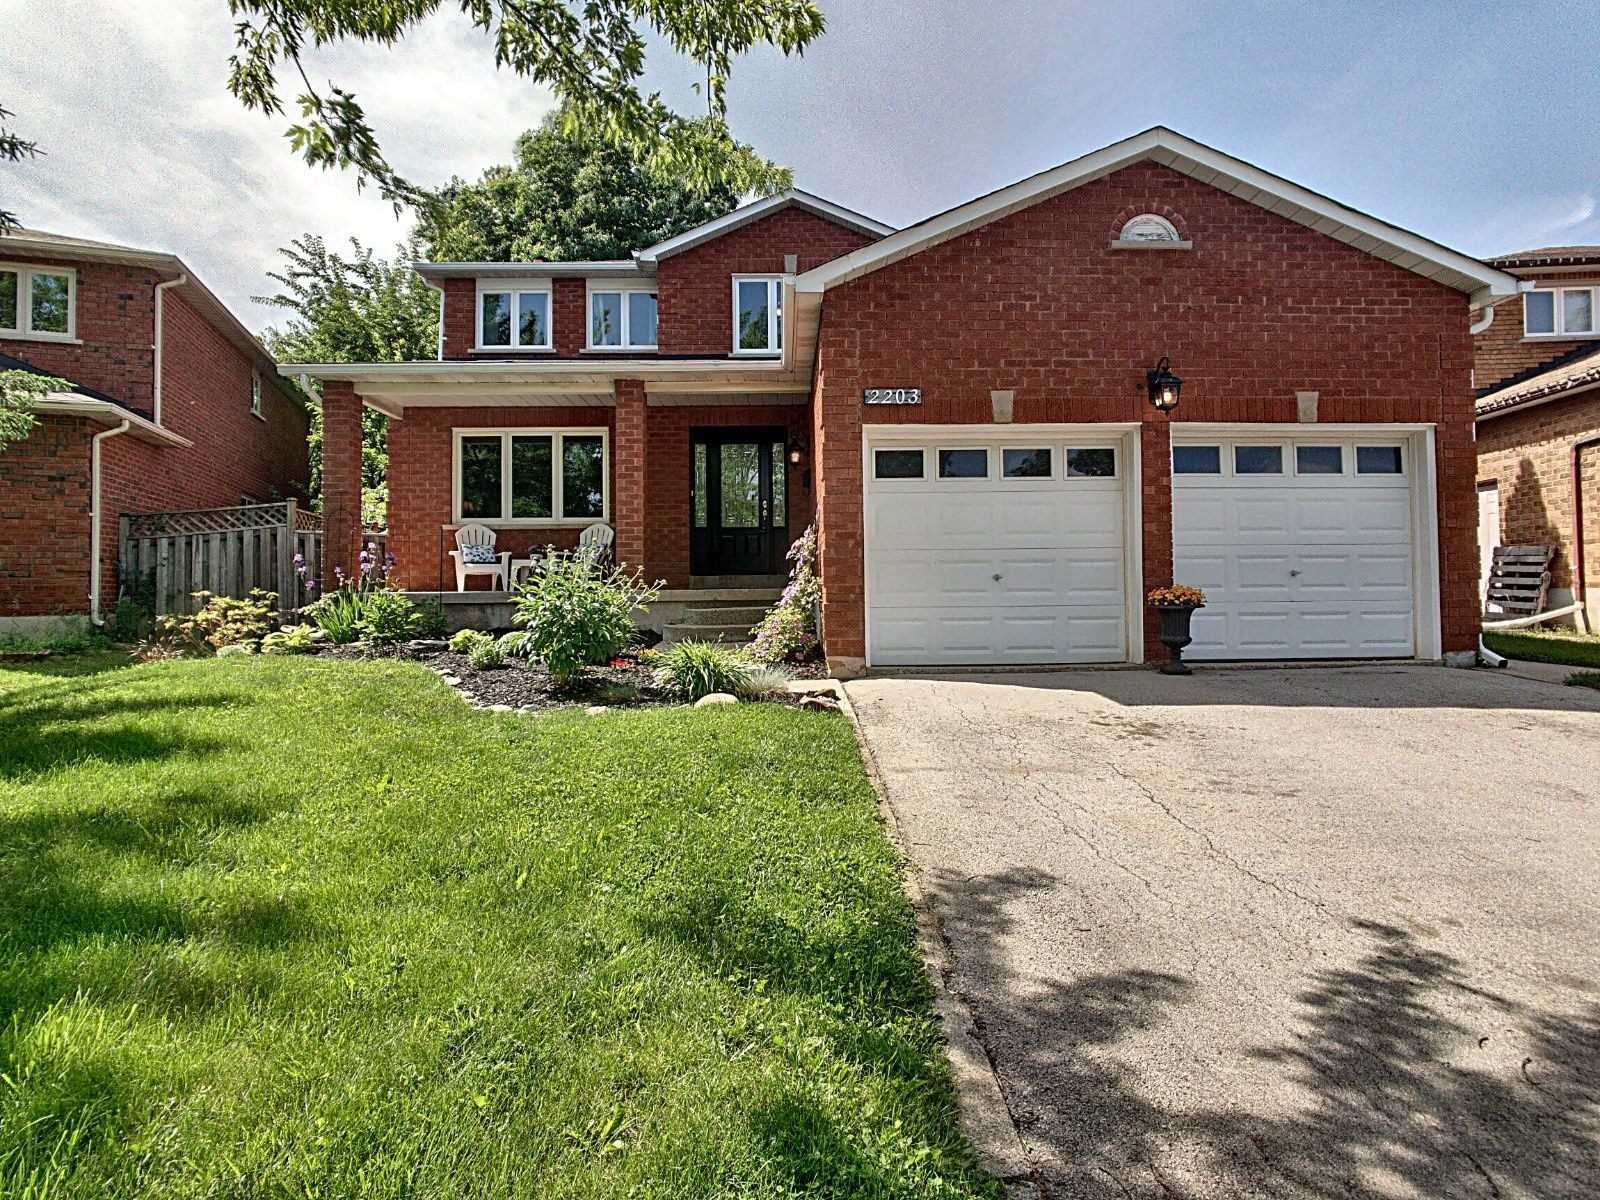 Lovely Family Home Situated In Prestigious Wedgewood Creek. Home Has 5 Total Beds & 4 Total Baths. Lots Of Living Space Throughout. Kitchen Has Ss Appliances W/ Walk-Out. Family Room W/ Fireplace. Main Floor Laundry. Master Bed Has Walk-In Closet & Ensuite Bath. Finished Basement W/ Separate Entrance, Bed, Bath & Kitchen. Fully Fenced & Landscaped Backyard W/ Heated, Saltwater Pool. Close To Schools, Parks, Golf, Major Amenities & Highway Access